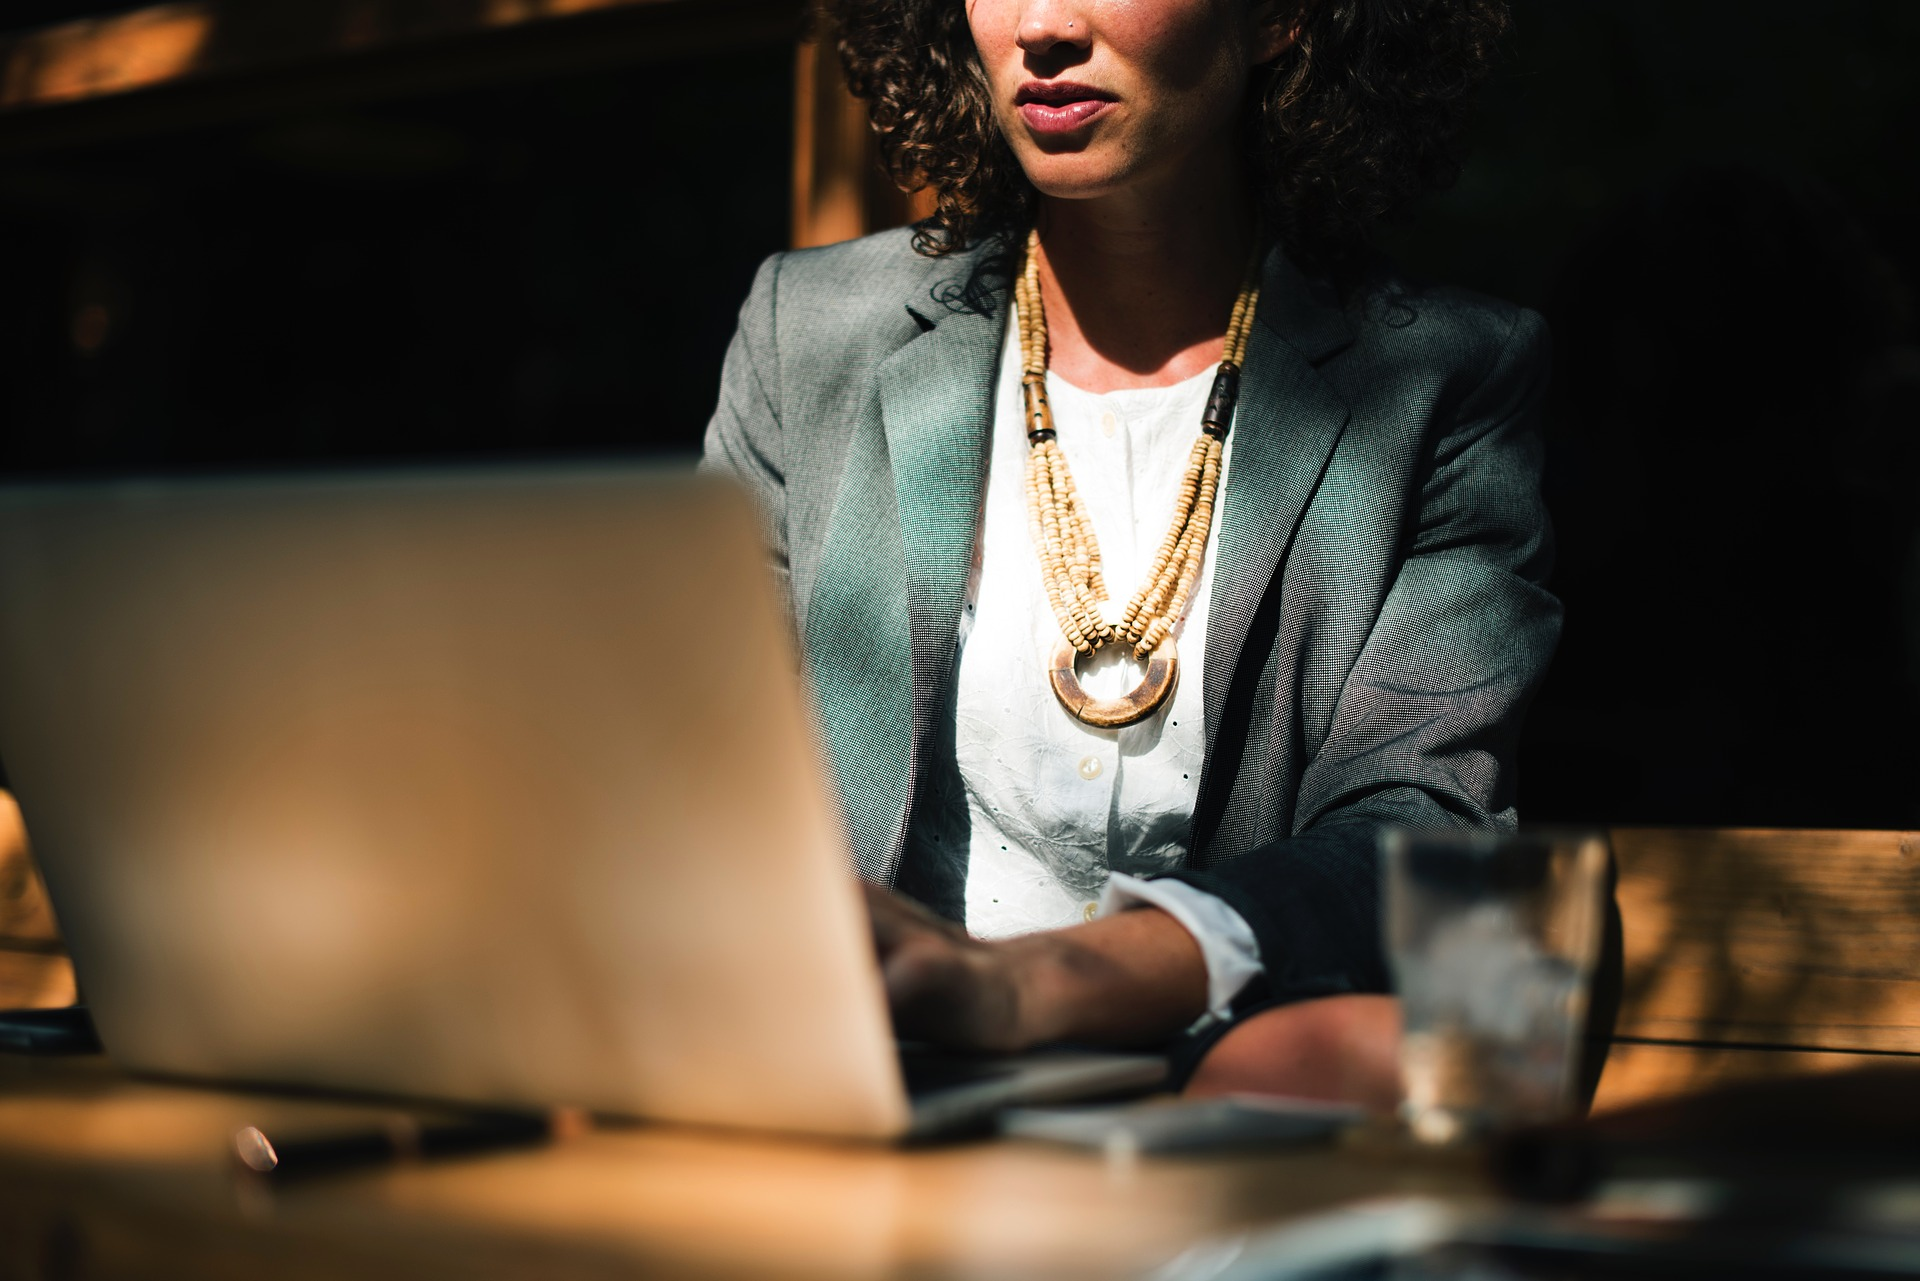 Woman in business casual attire working on a laptop